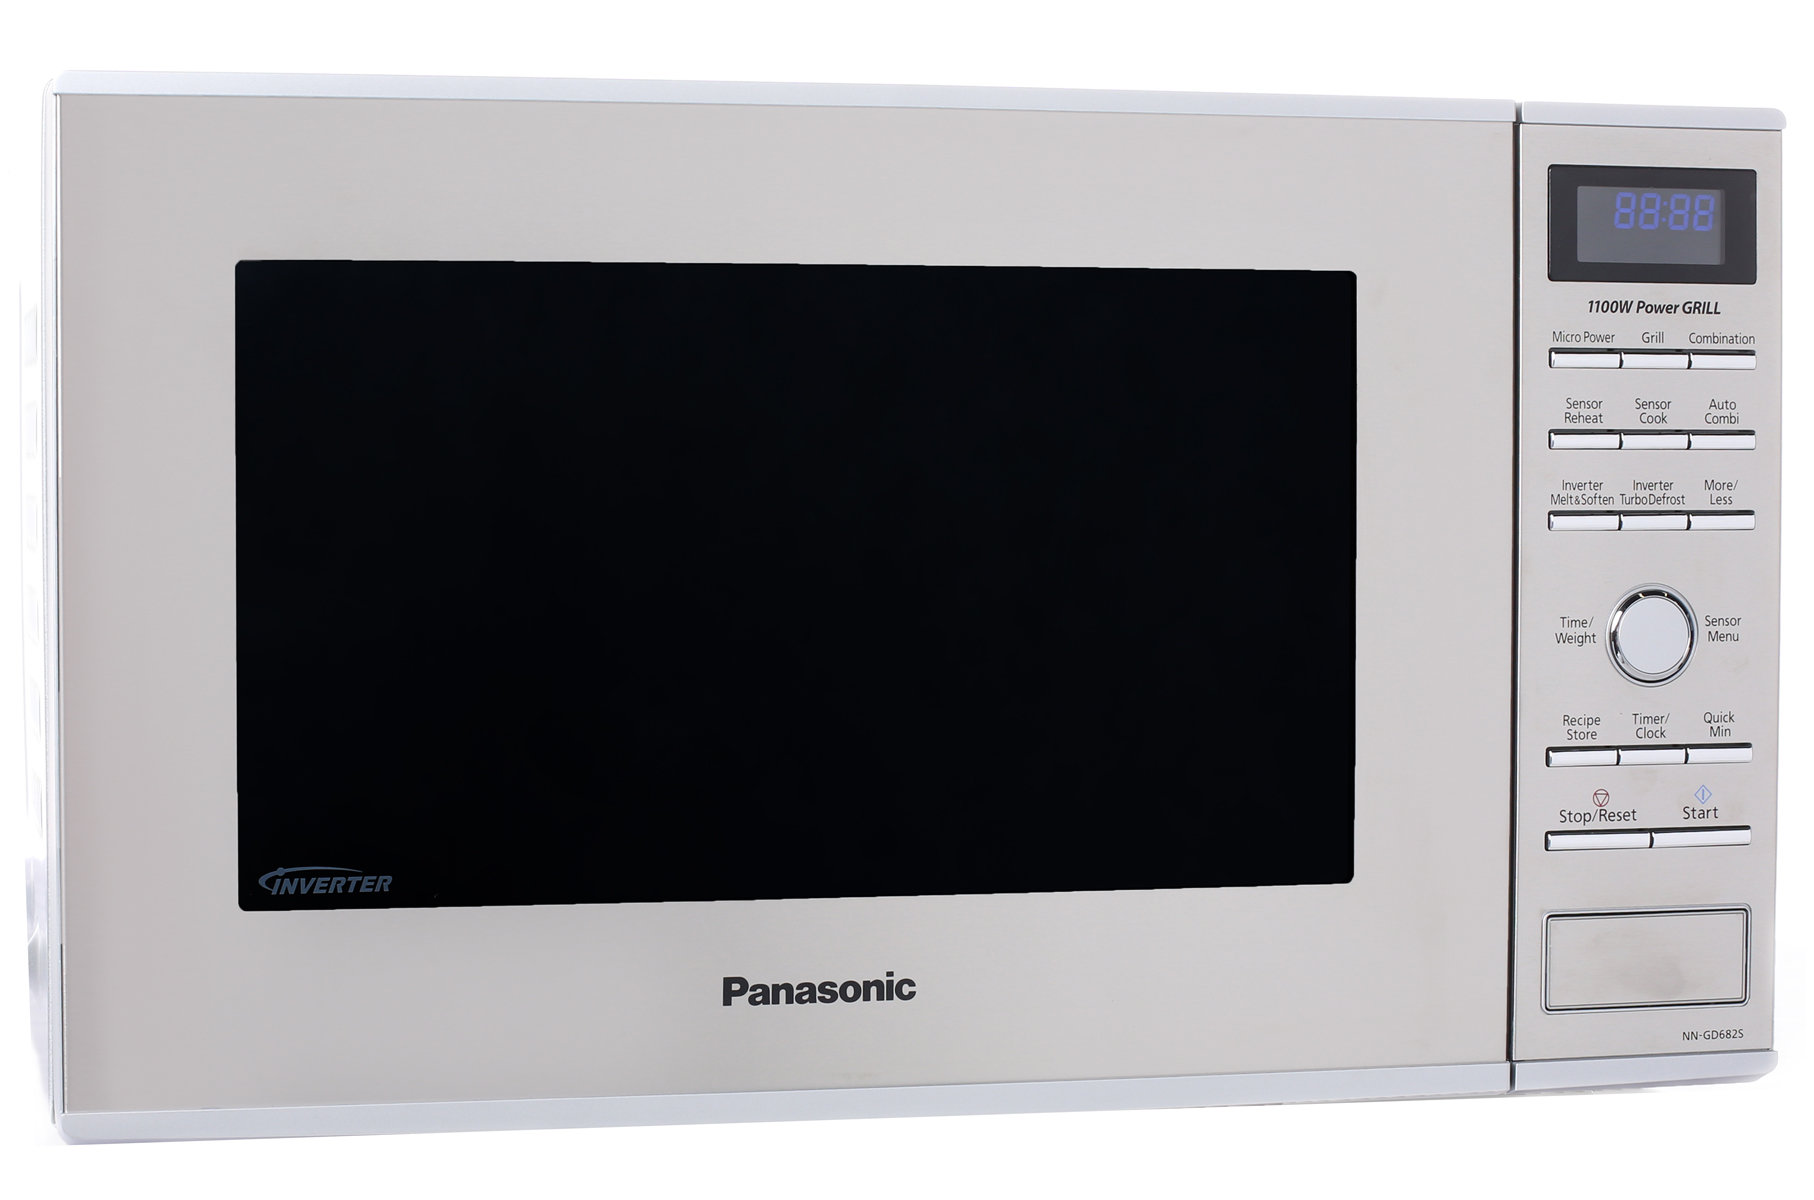 panasonic nngd682s 31l microwave with grill 1100w appliances online rh appliancesonline com au Weber Gas Grill Manuals Master Forge Gas Grill Manual